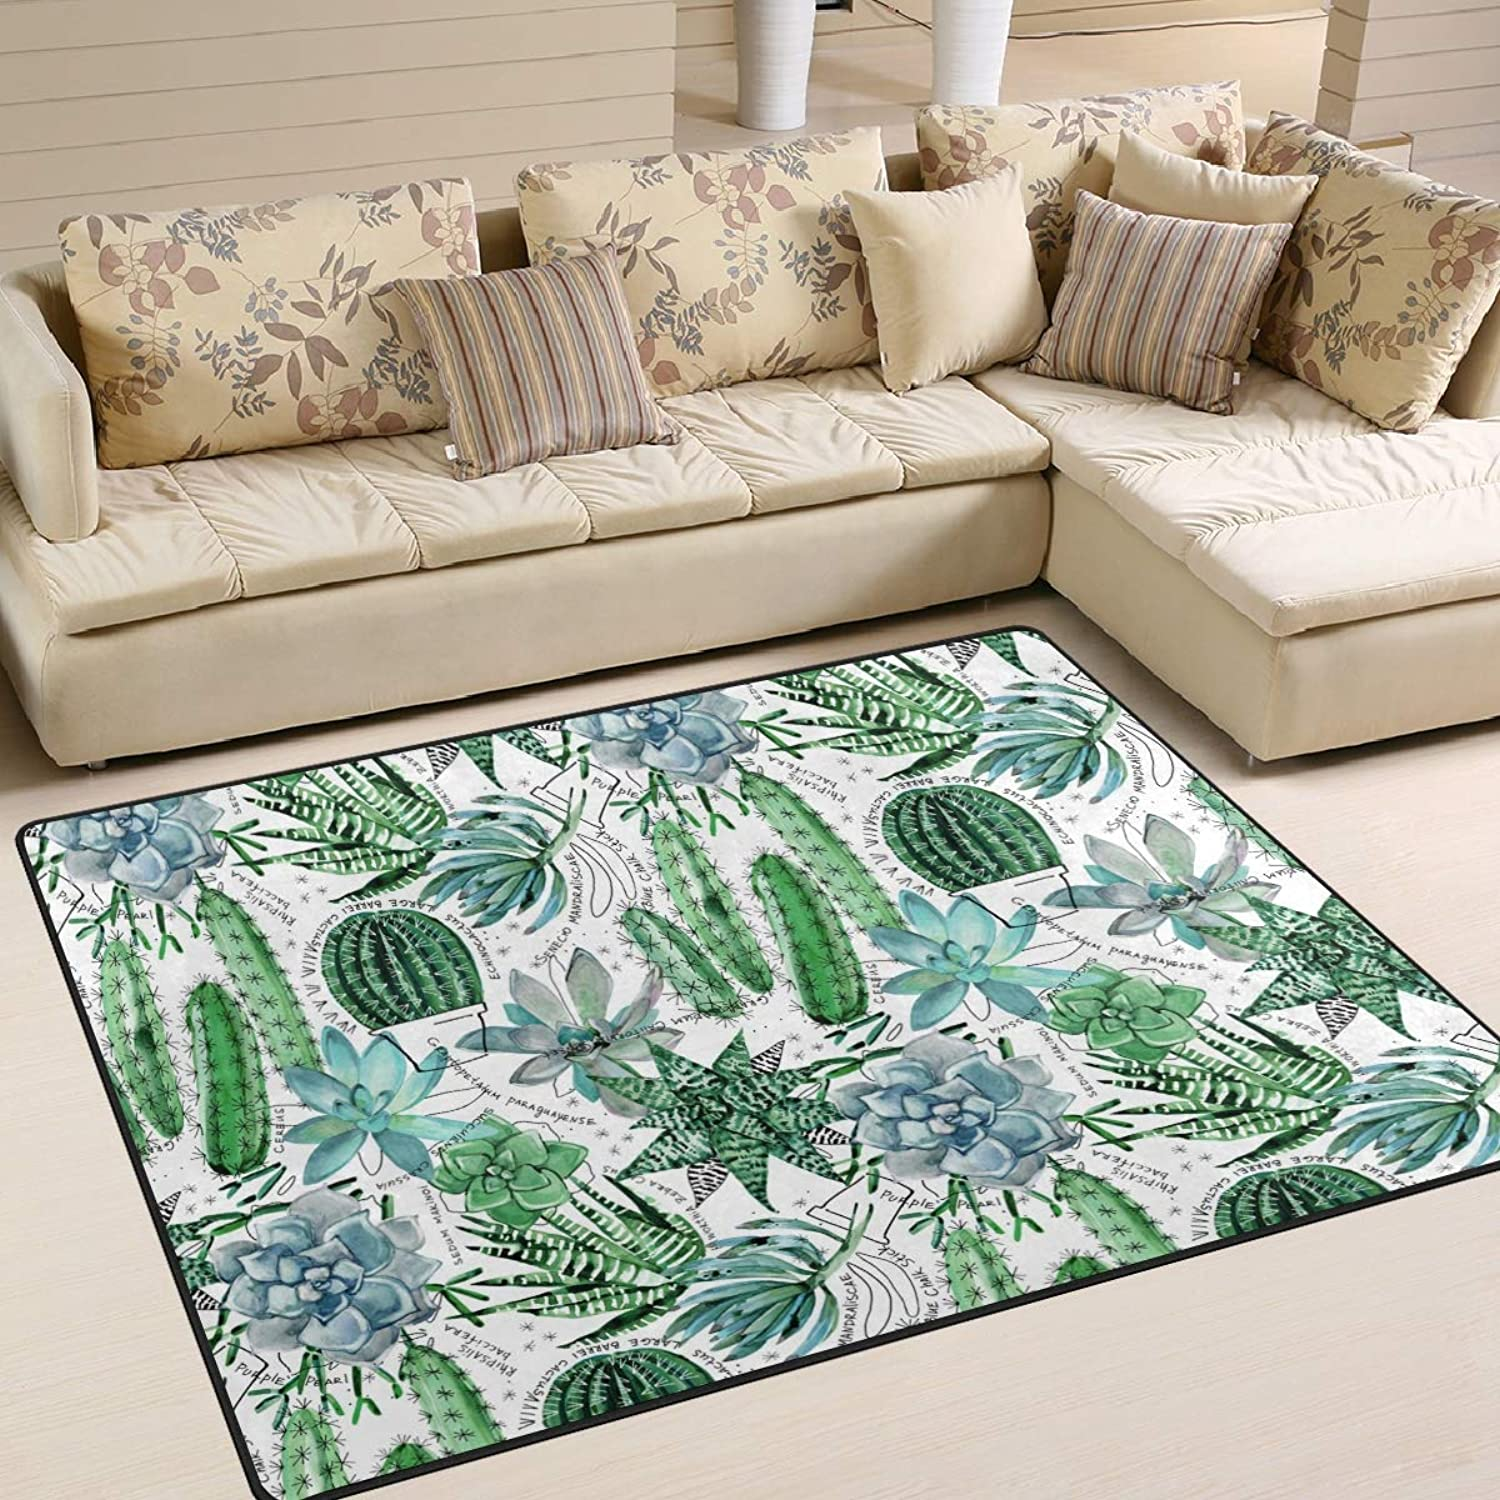 Natural Plant Succulents Cactus Floor Mat Rug Indoor Front Door Kitchen and Living Room Bedroom Mats Rubber Non Slip